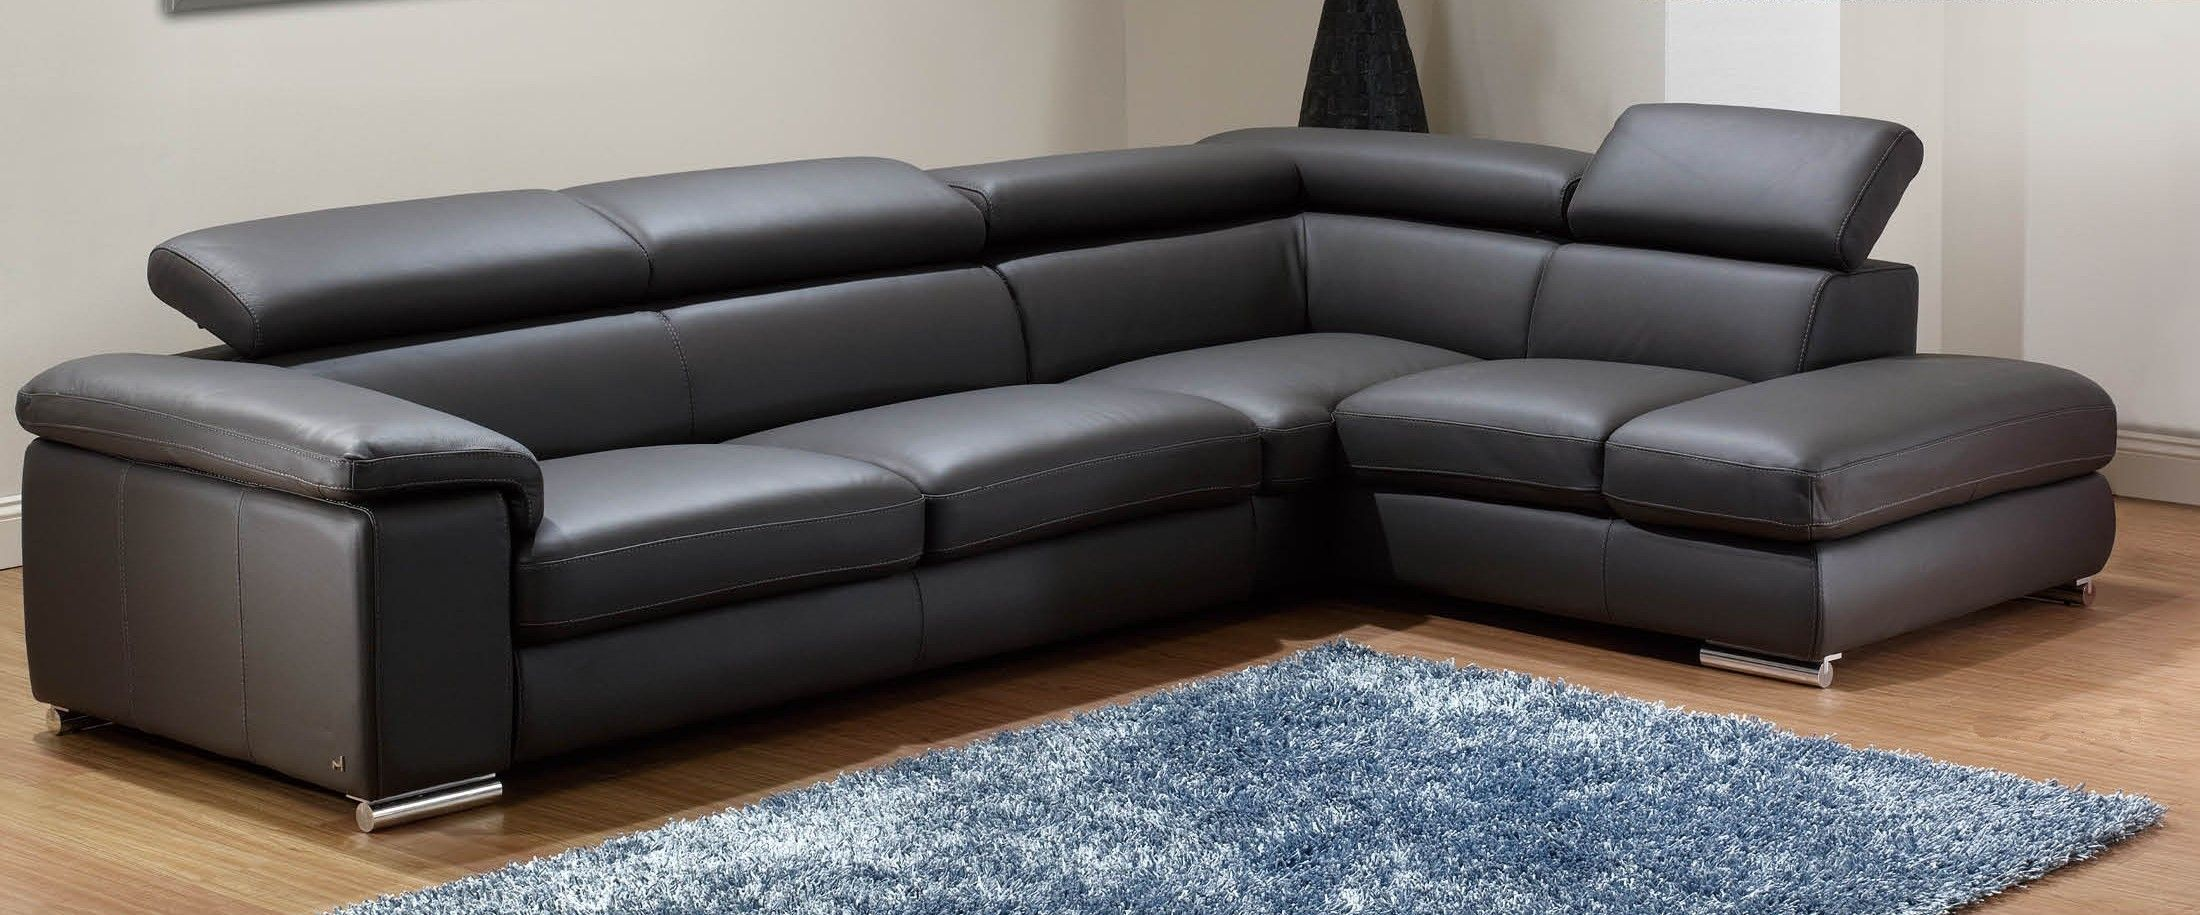 couch: Glamorous couches near me Cheap Couch, Ashley ...